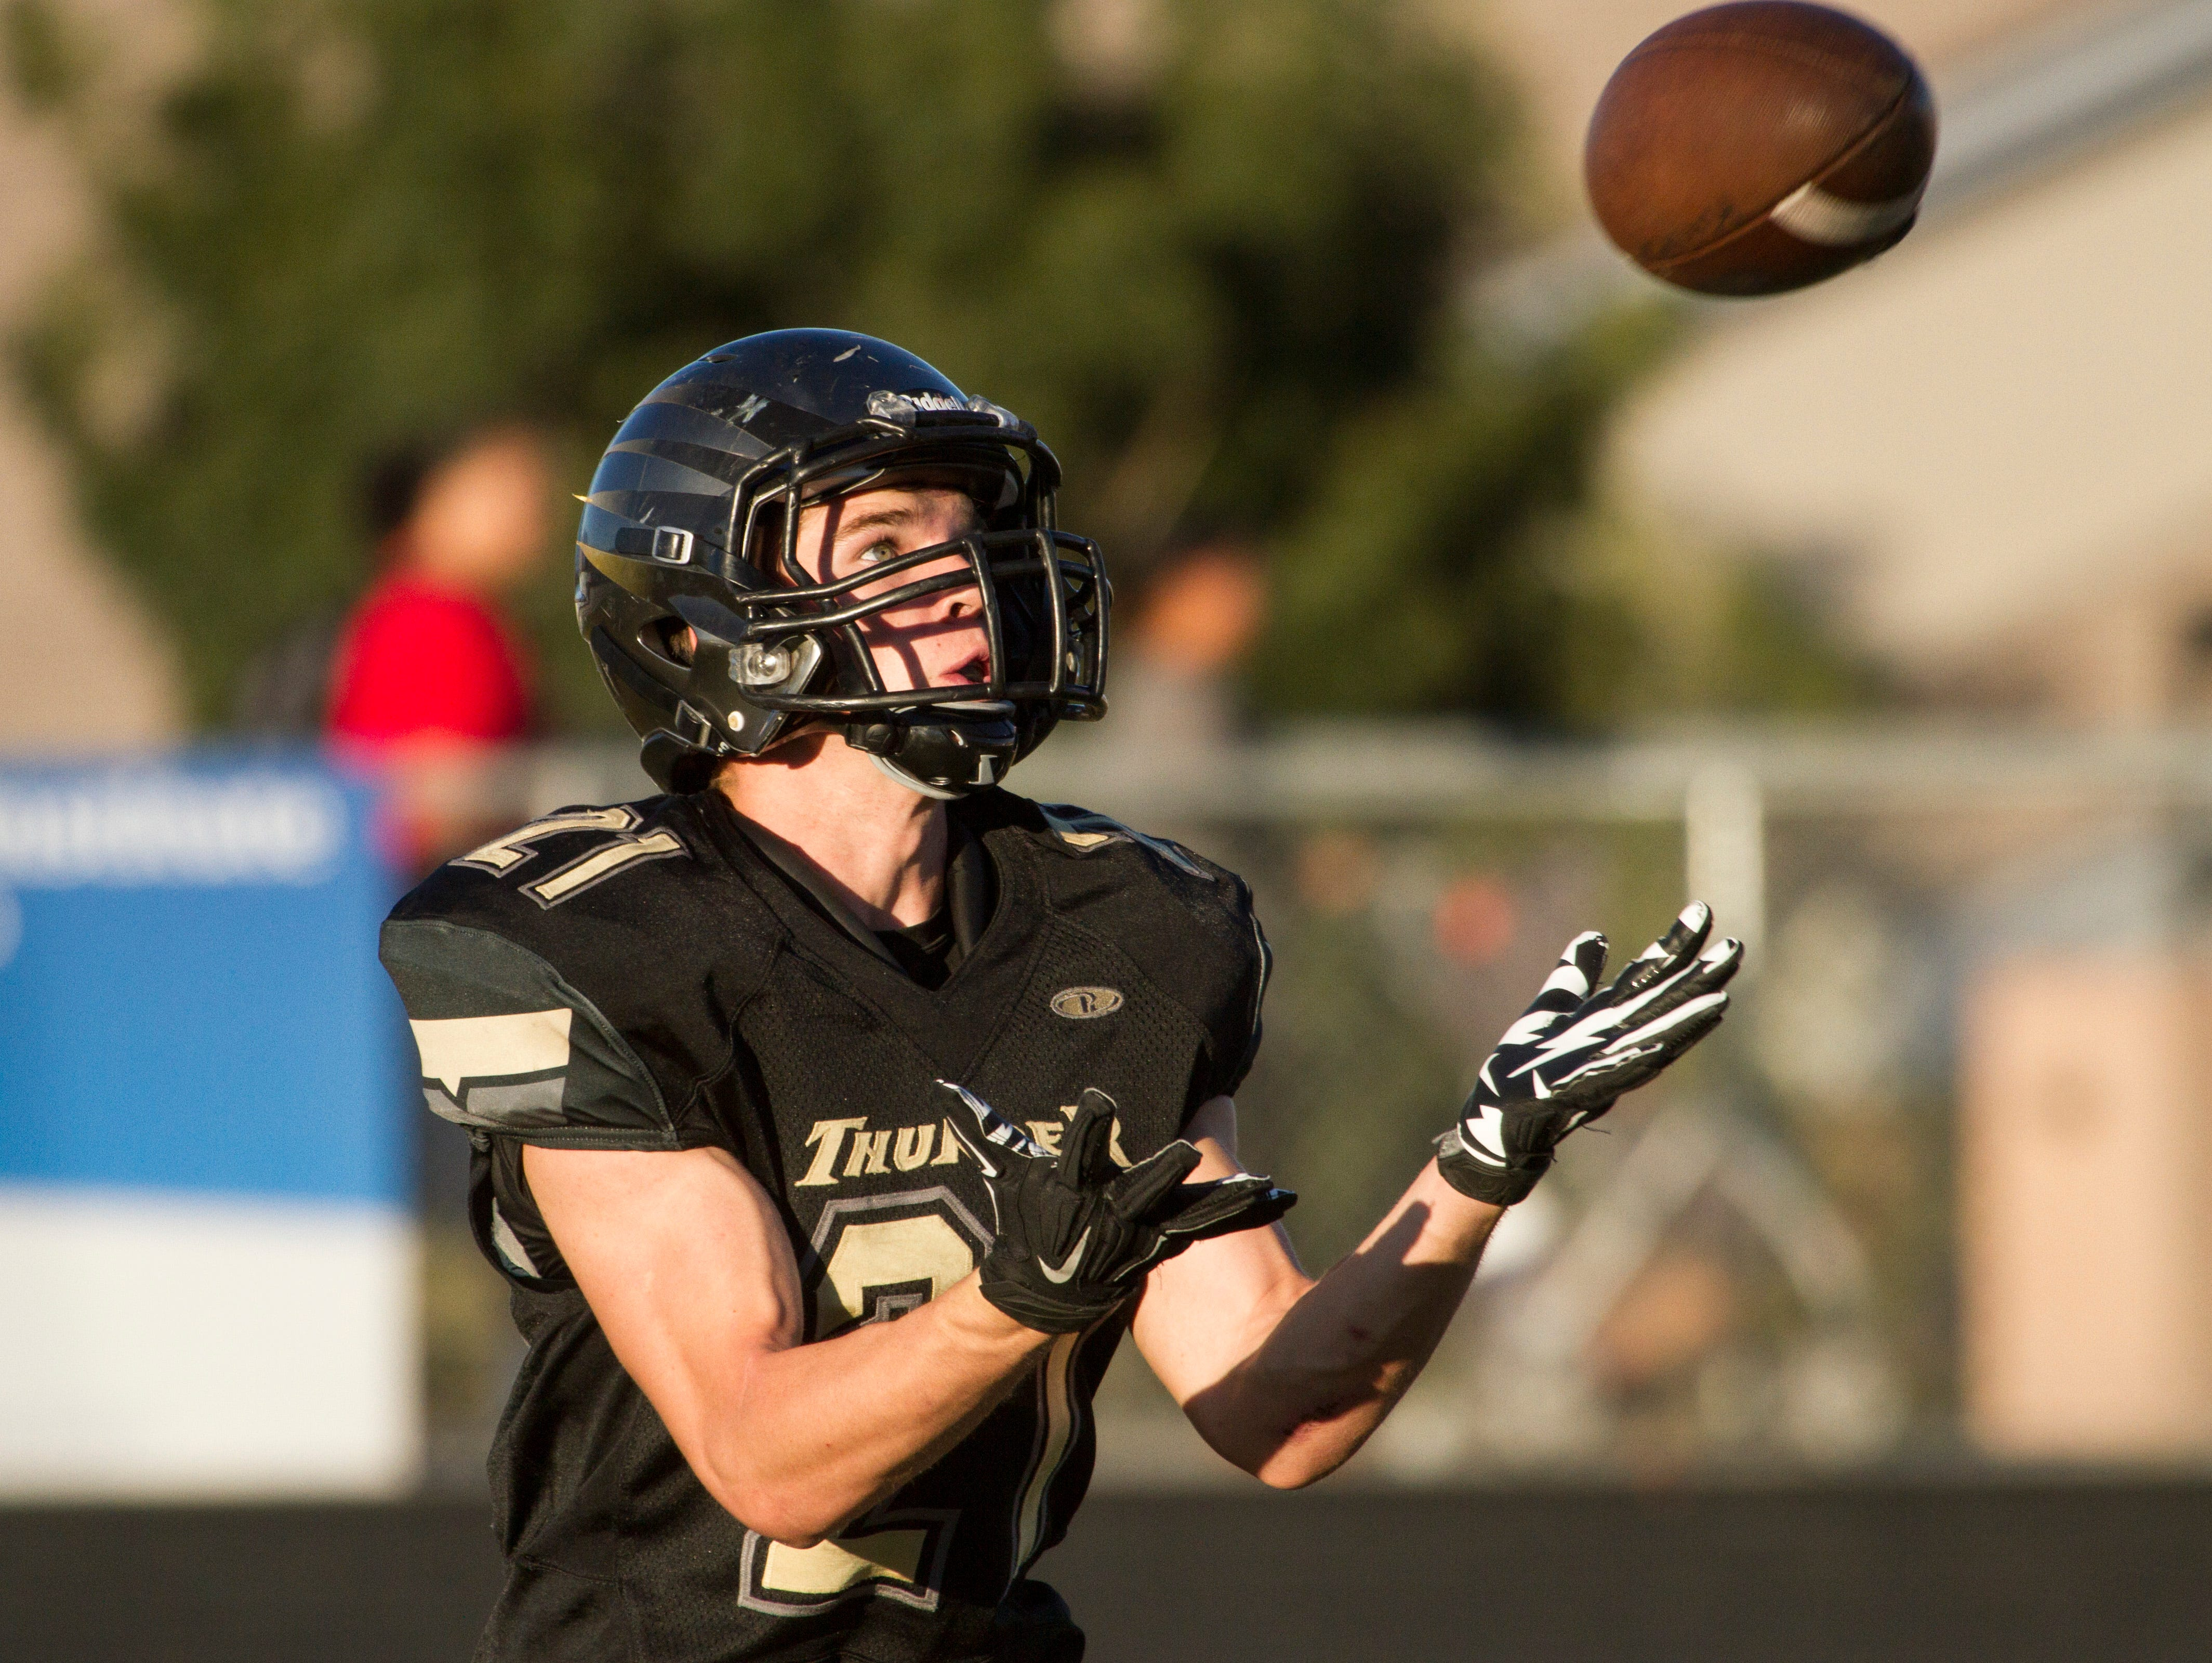 Brock Parry, from Desert Hills, returns the ball during their game against Logan High Wednesday, Oct. 14, 2015.